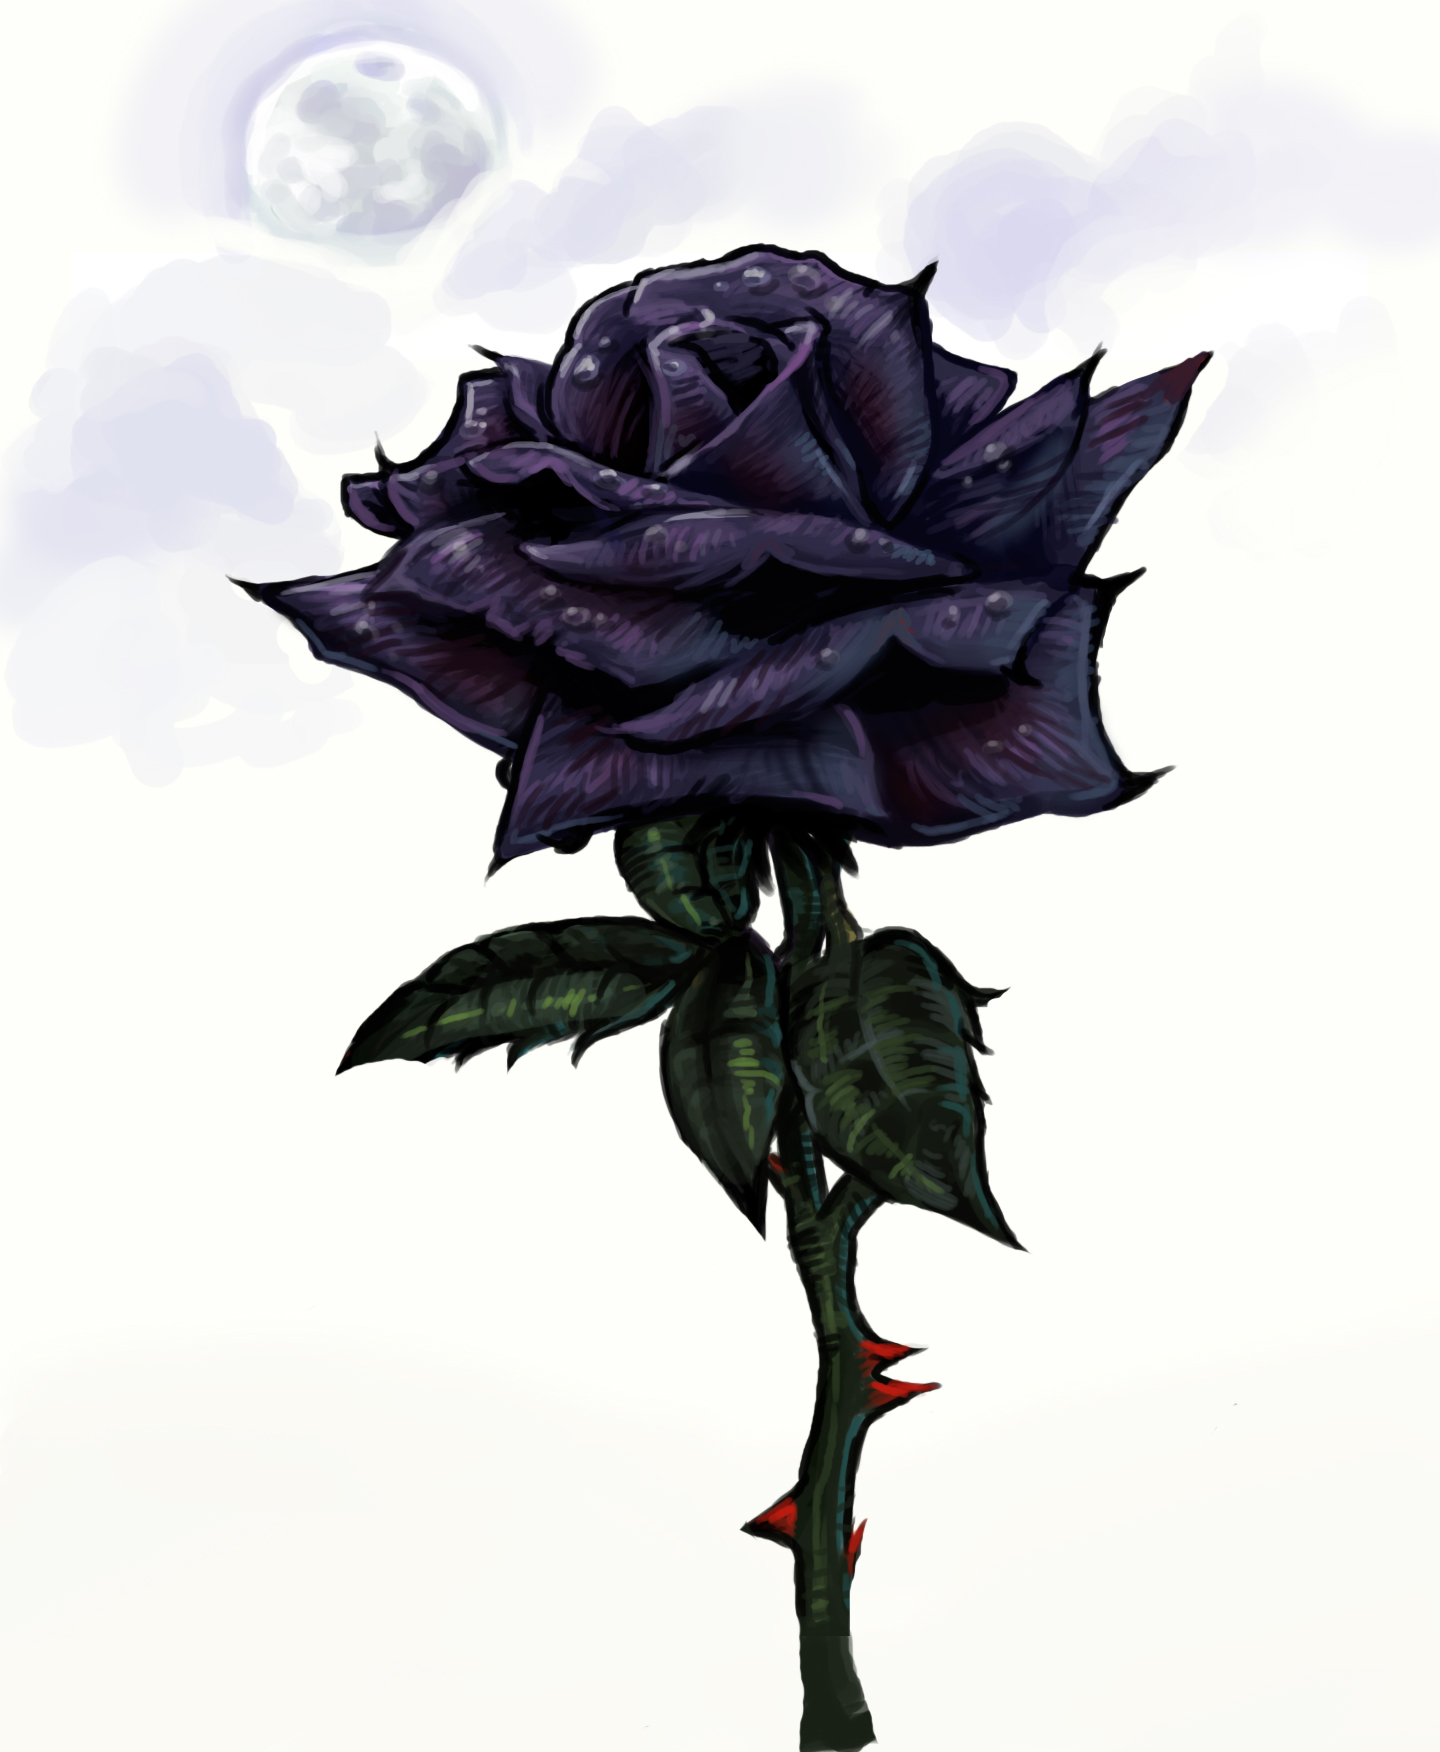 Black roses images black rose hd wallpaper and background for How to make black roses